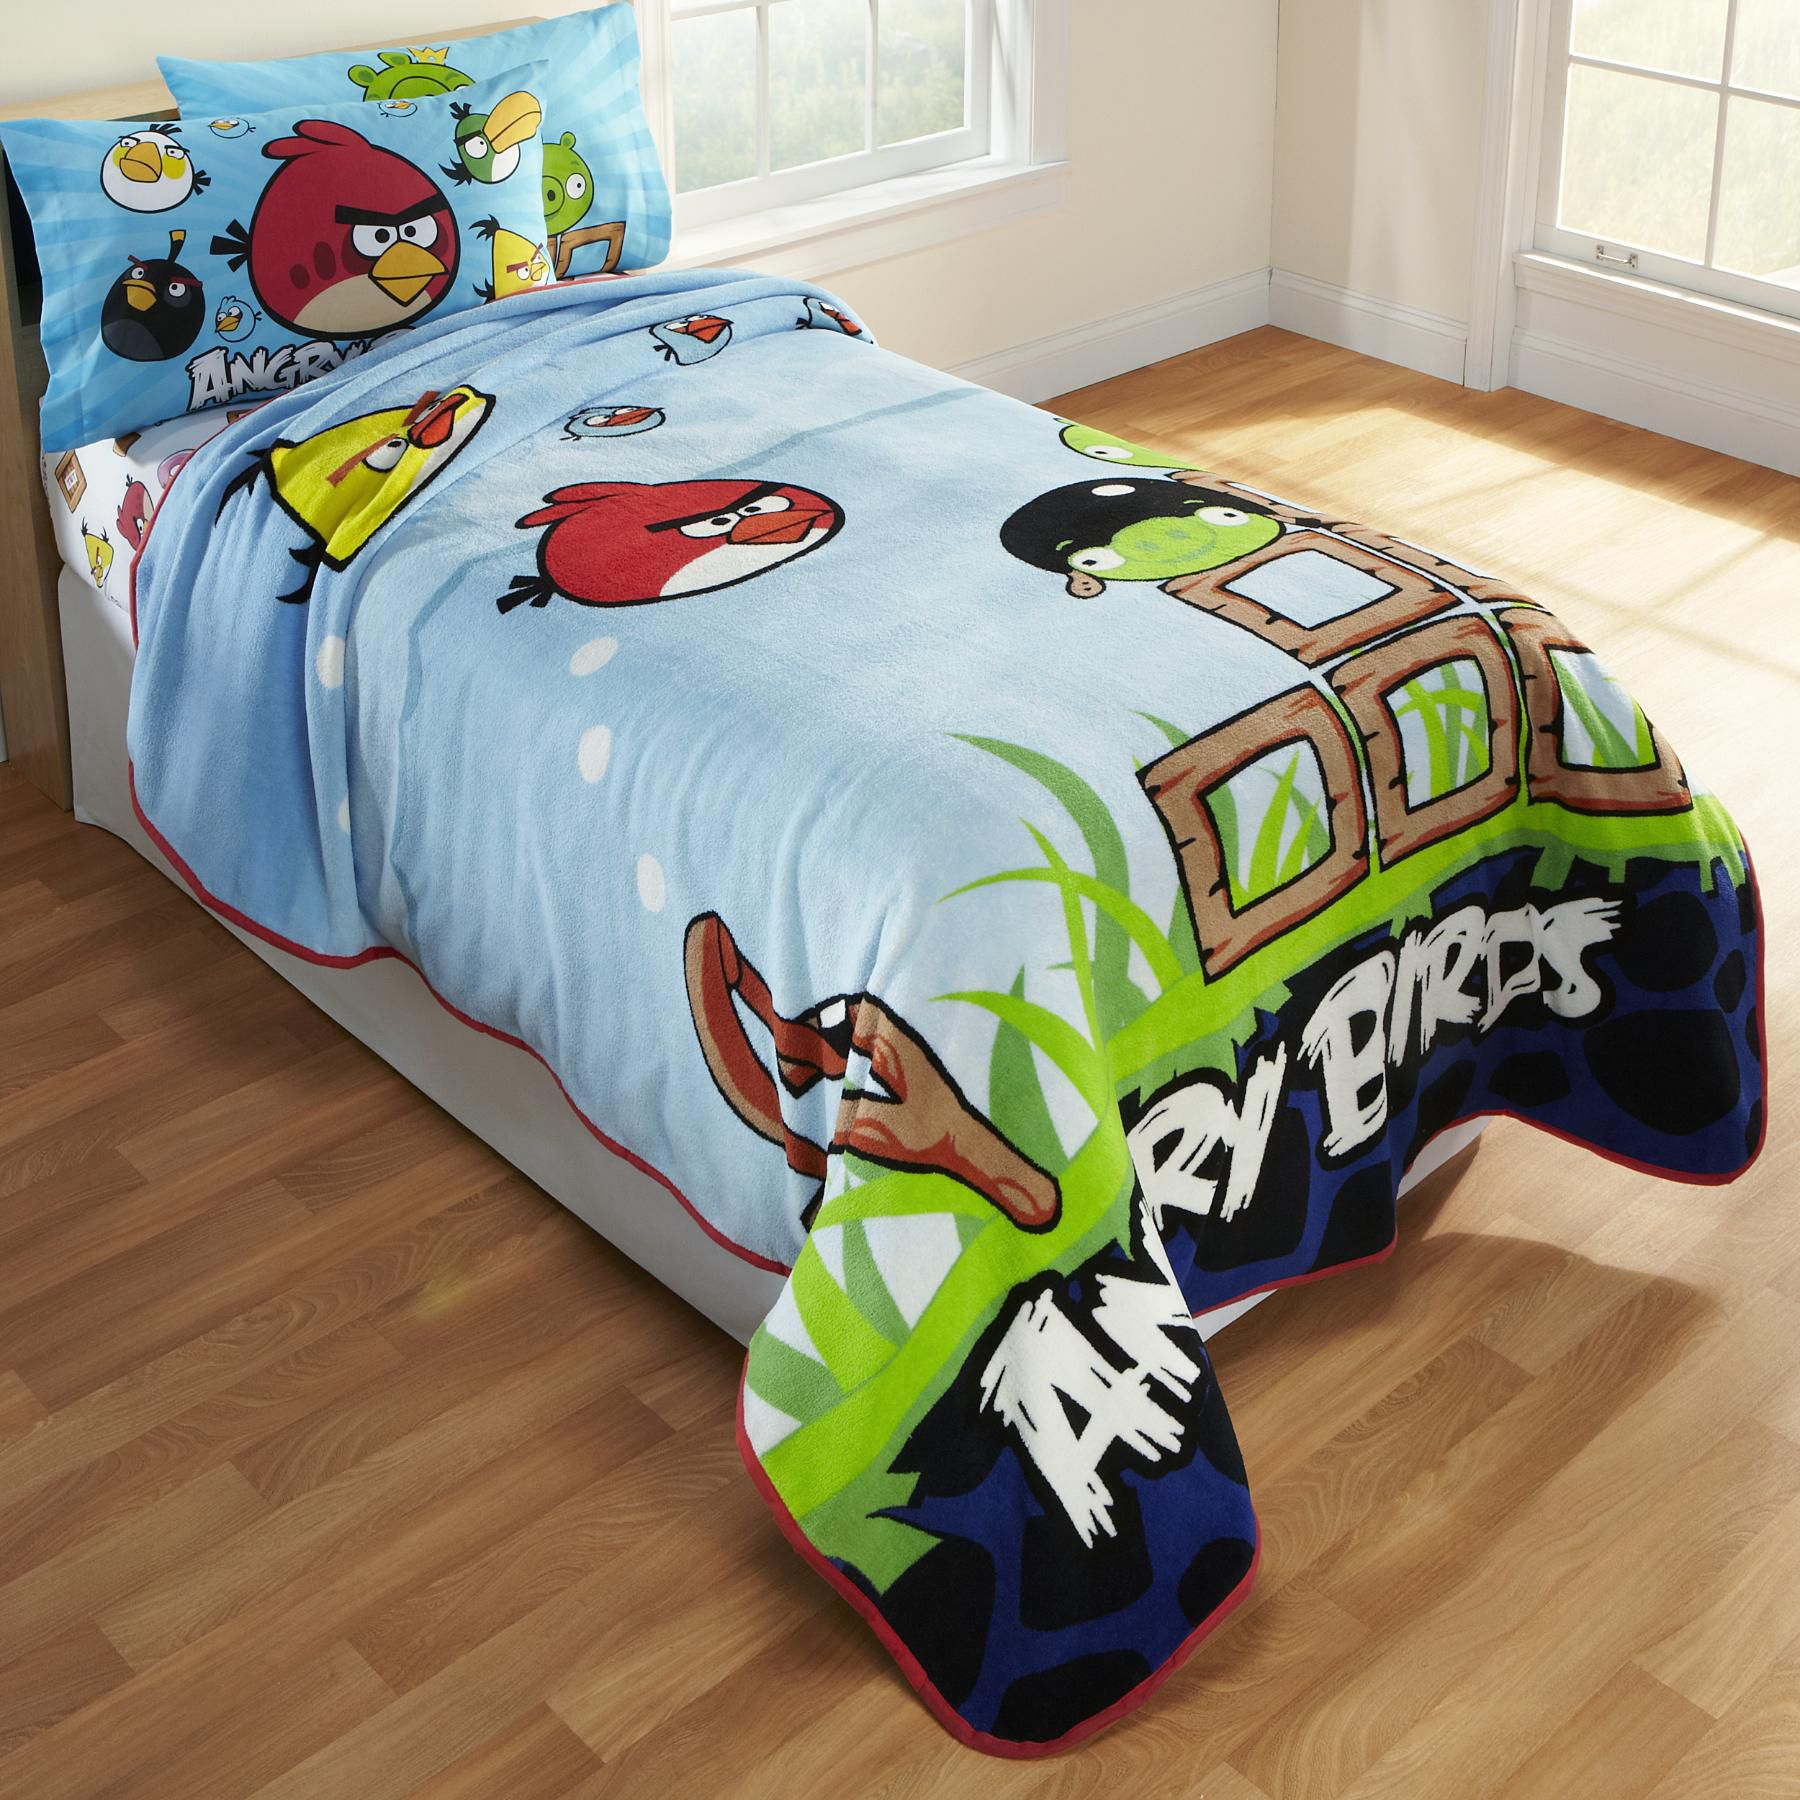 Child's Angry Birds Fleece Blanket